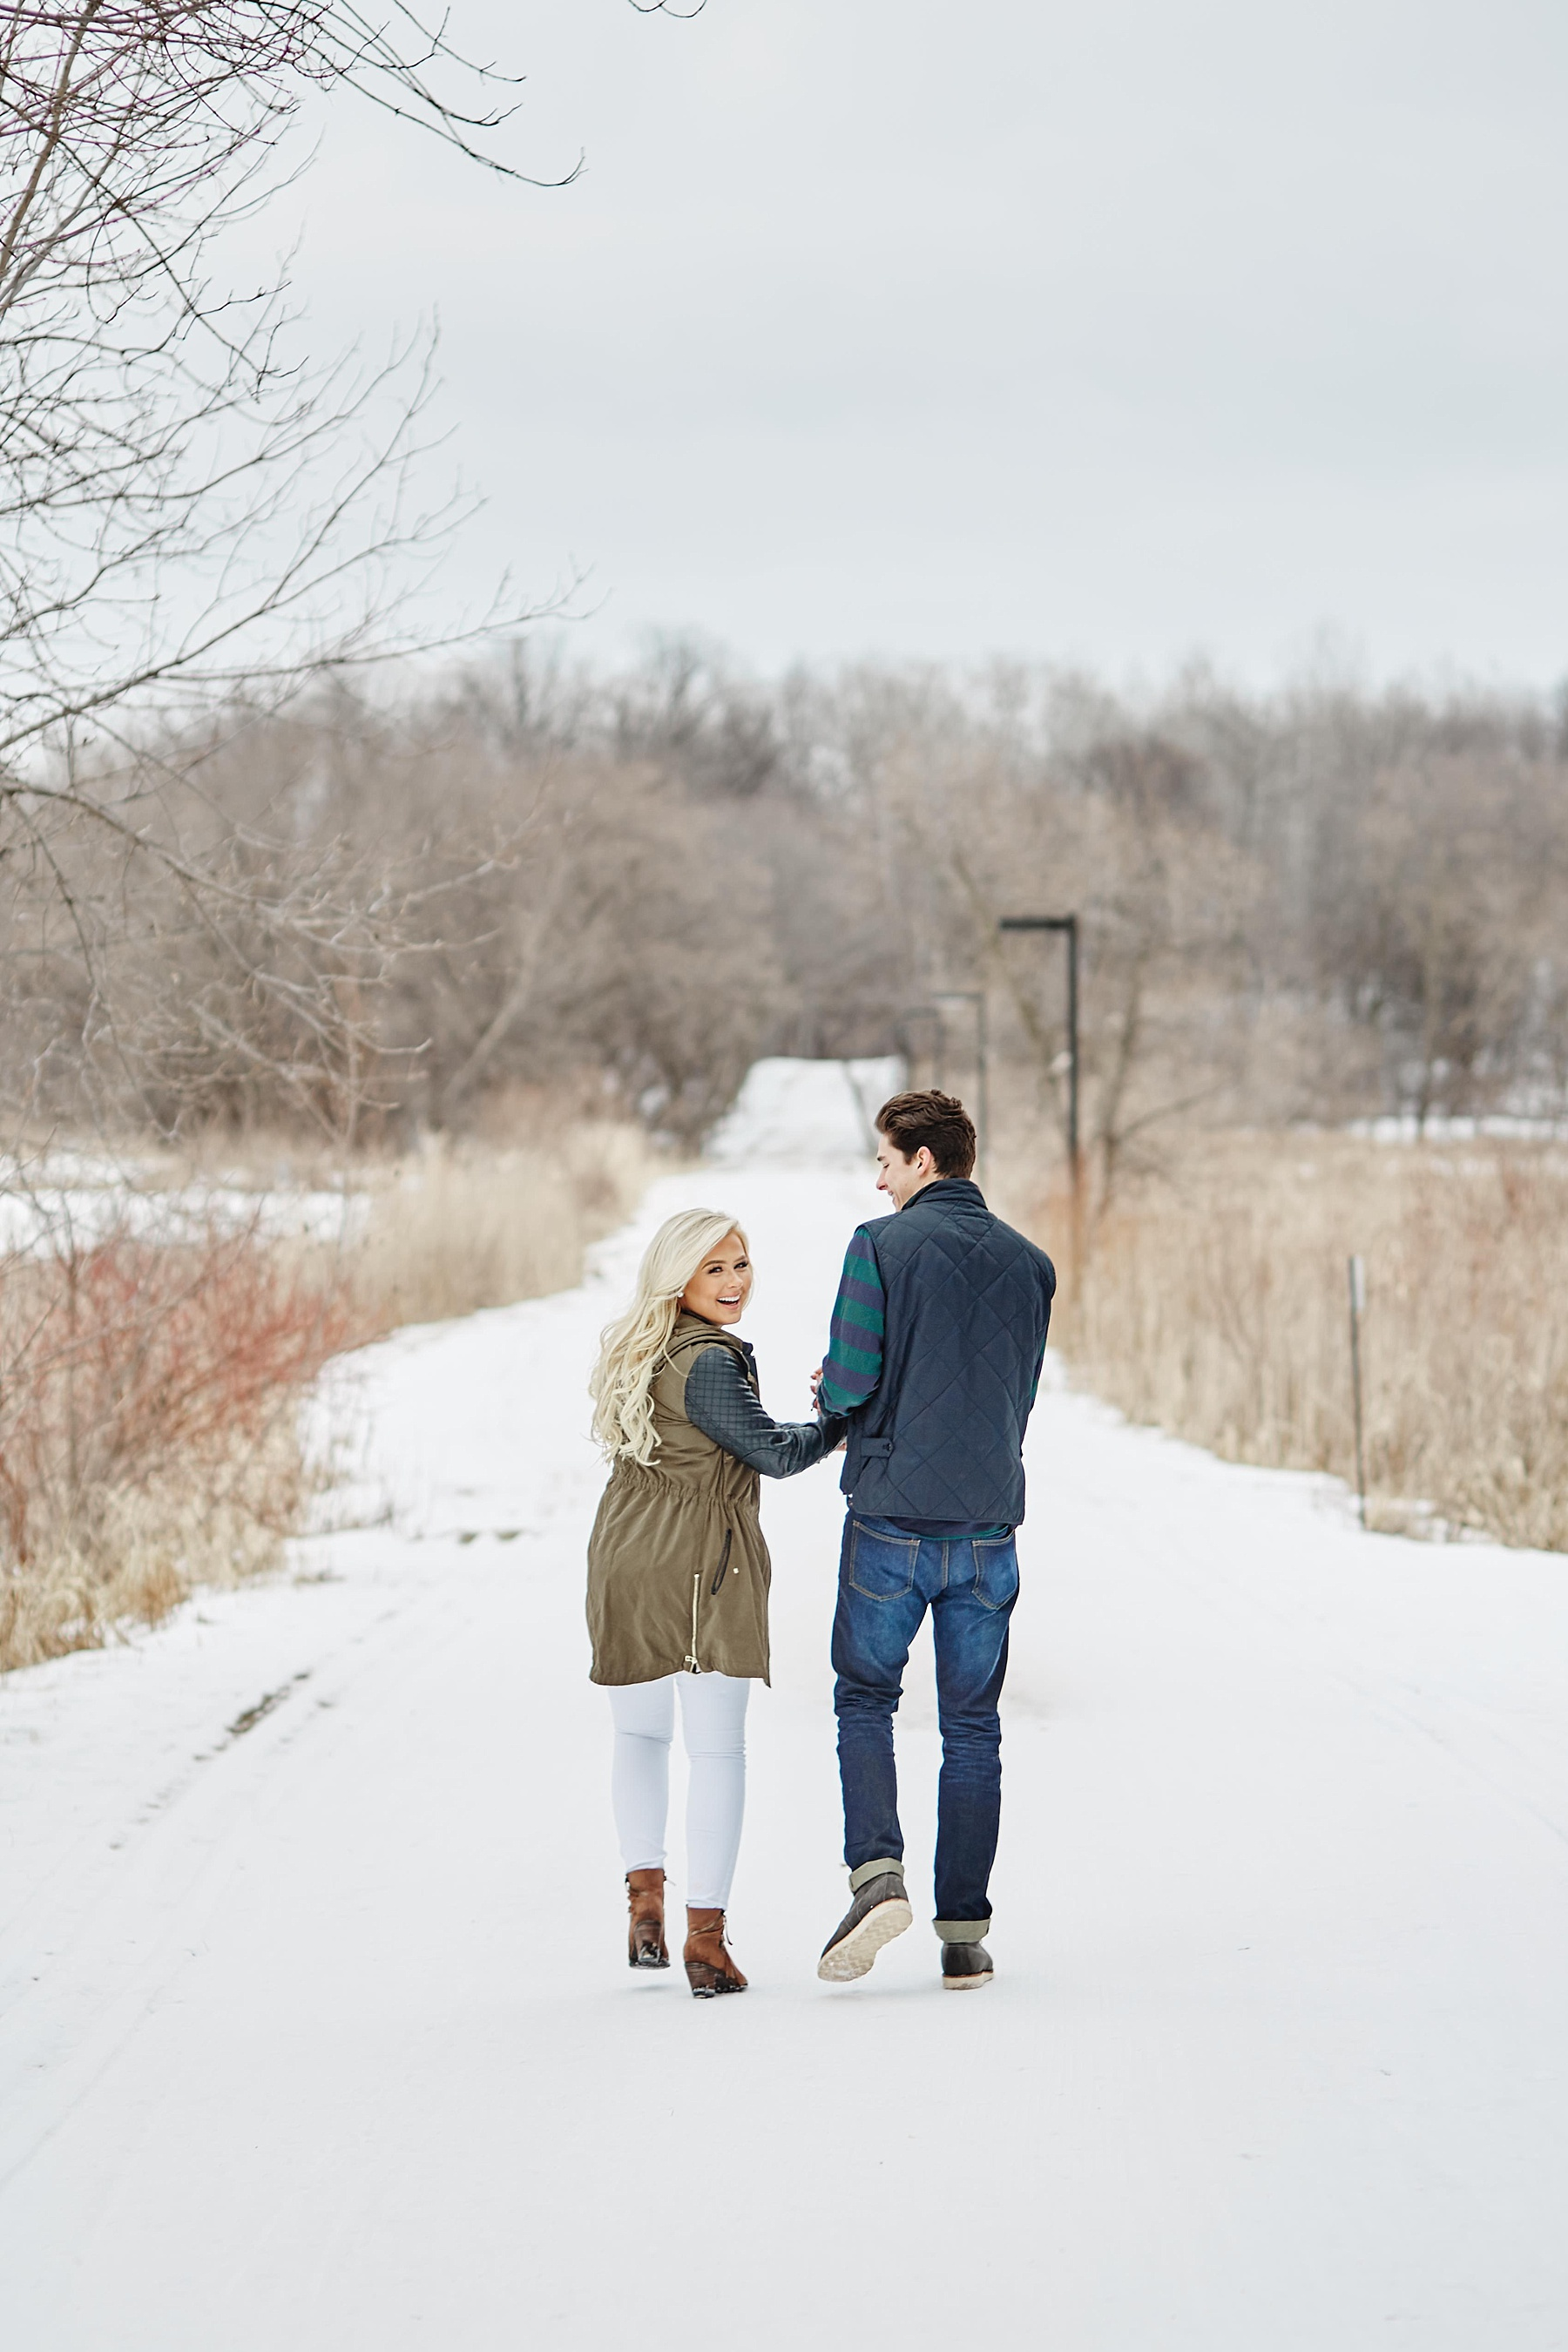 Elm-Creek-Park-Reserve-Engagement-Session-Perry-James-Photo_0172.jpg